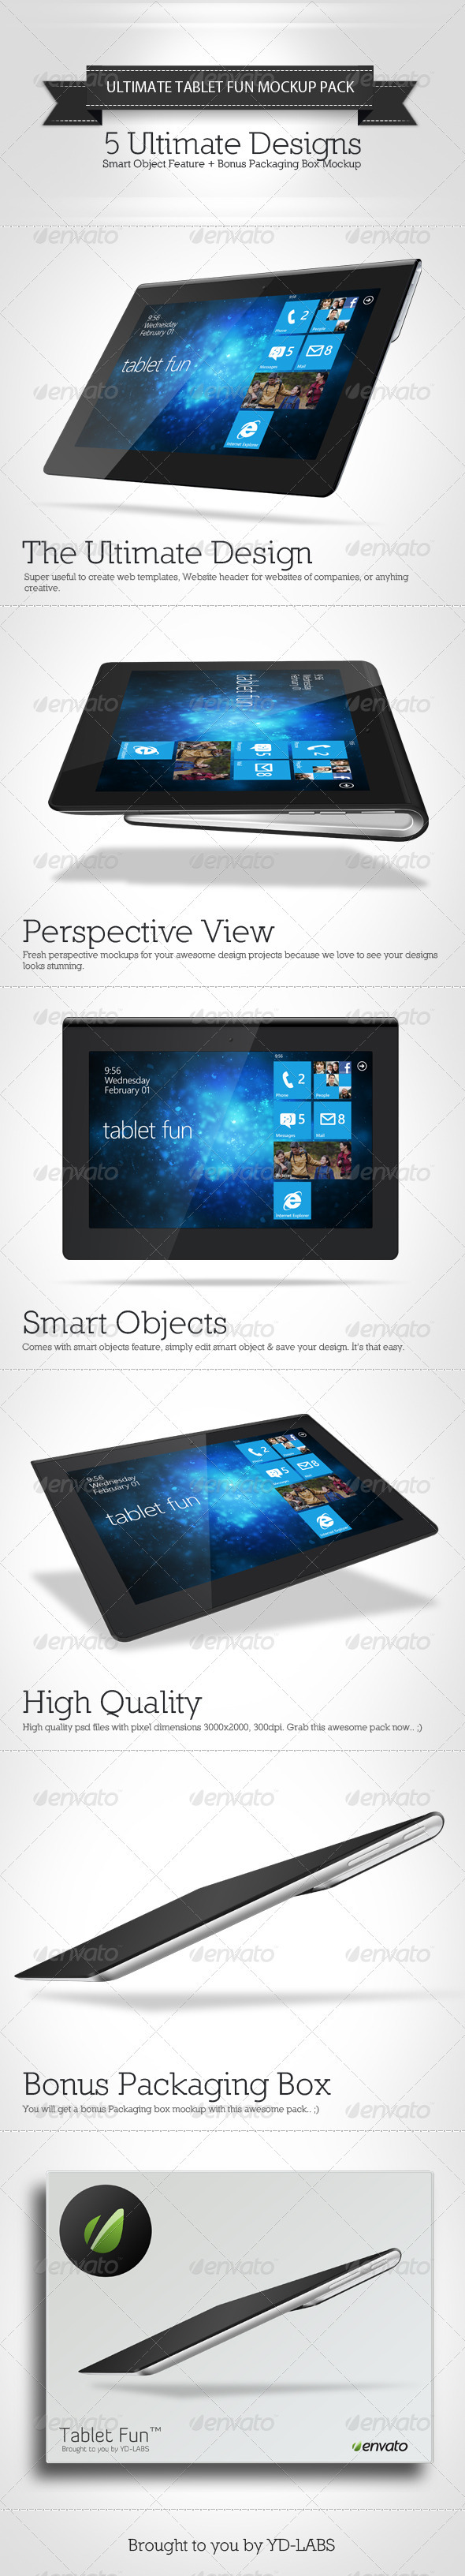 GraphicRiver Tablet Fun Mockup Pack 3065781